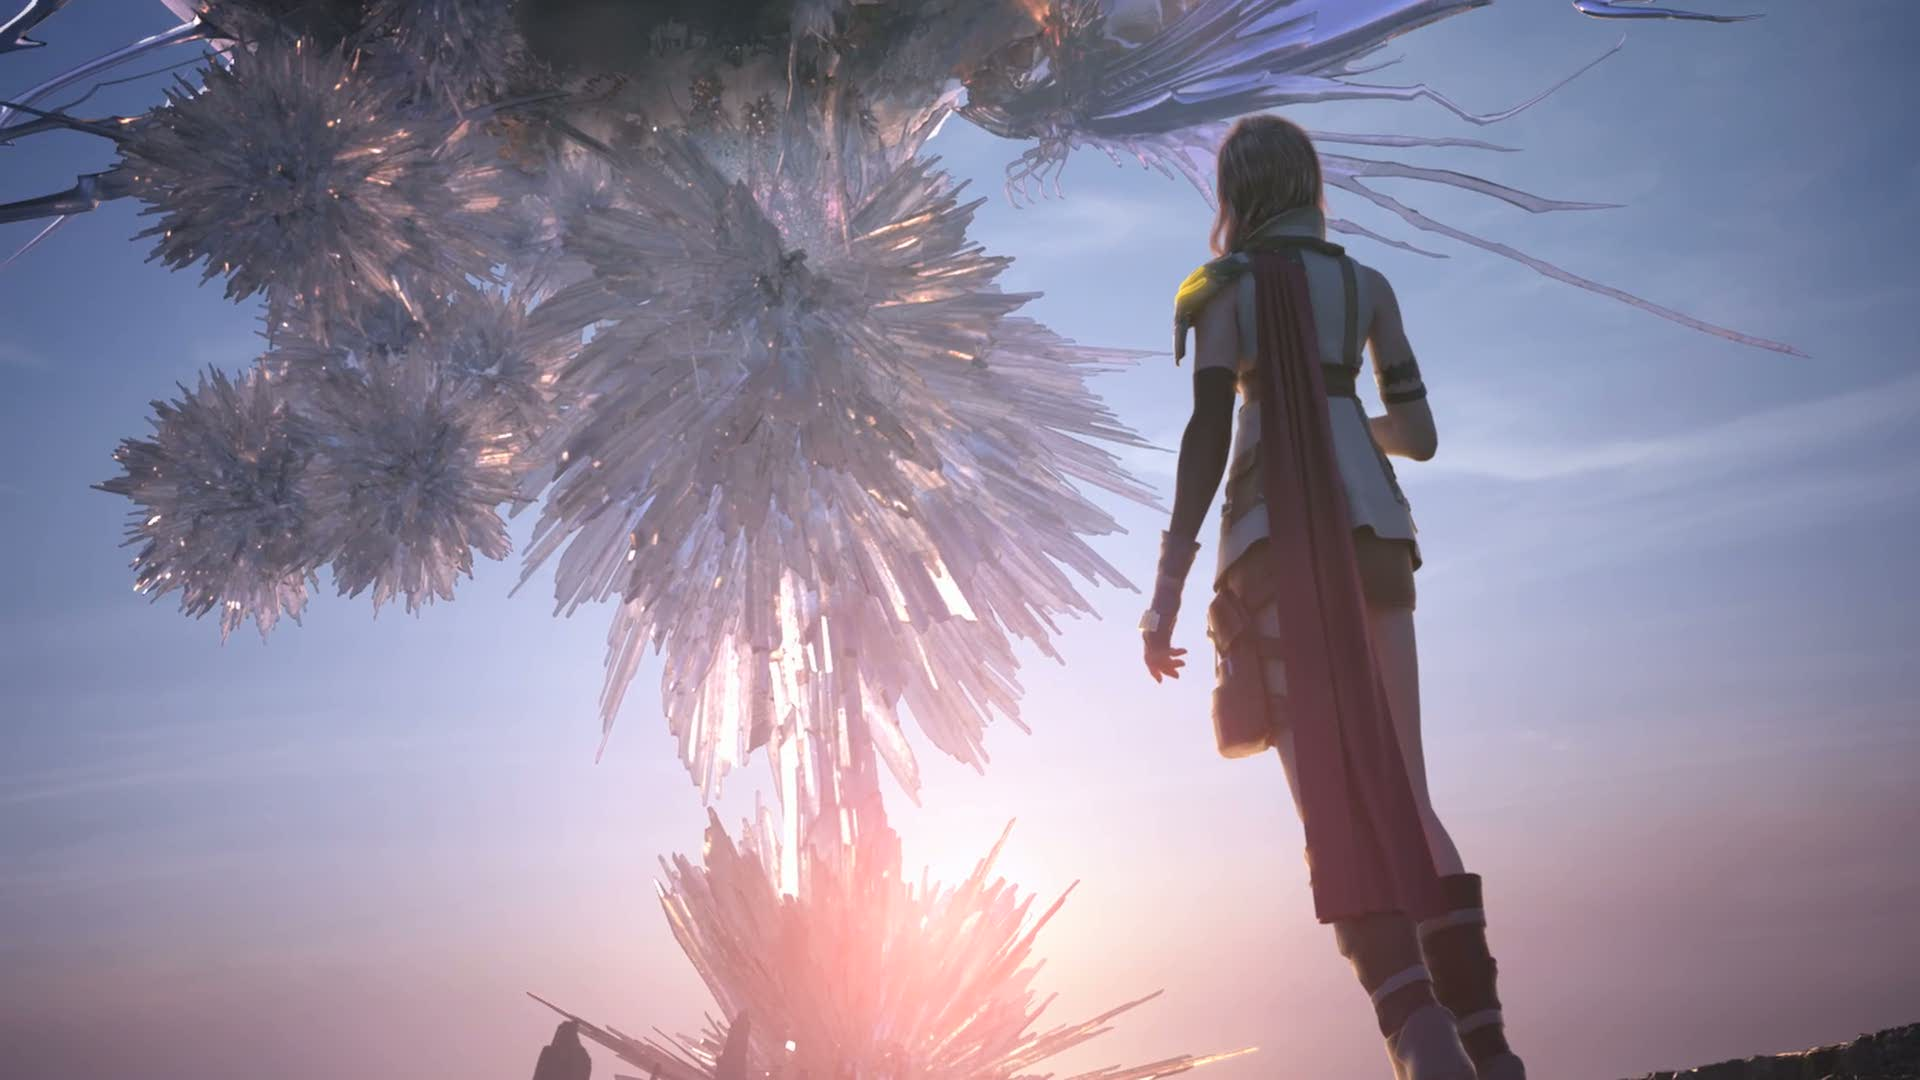 Final Fantasy 13 Wallpapers HD 1920x1080